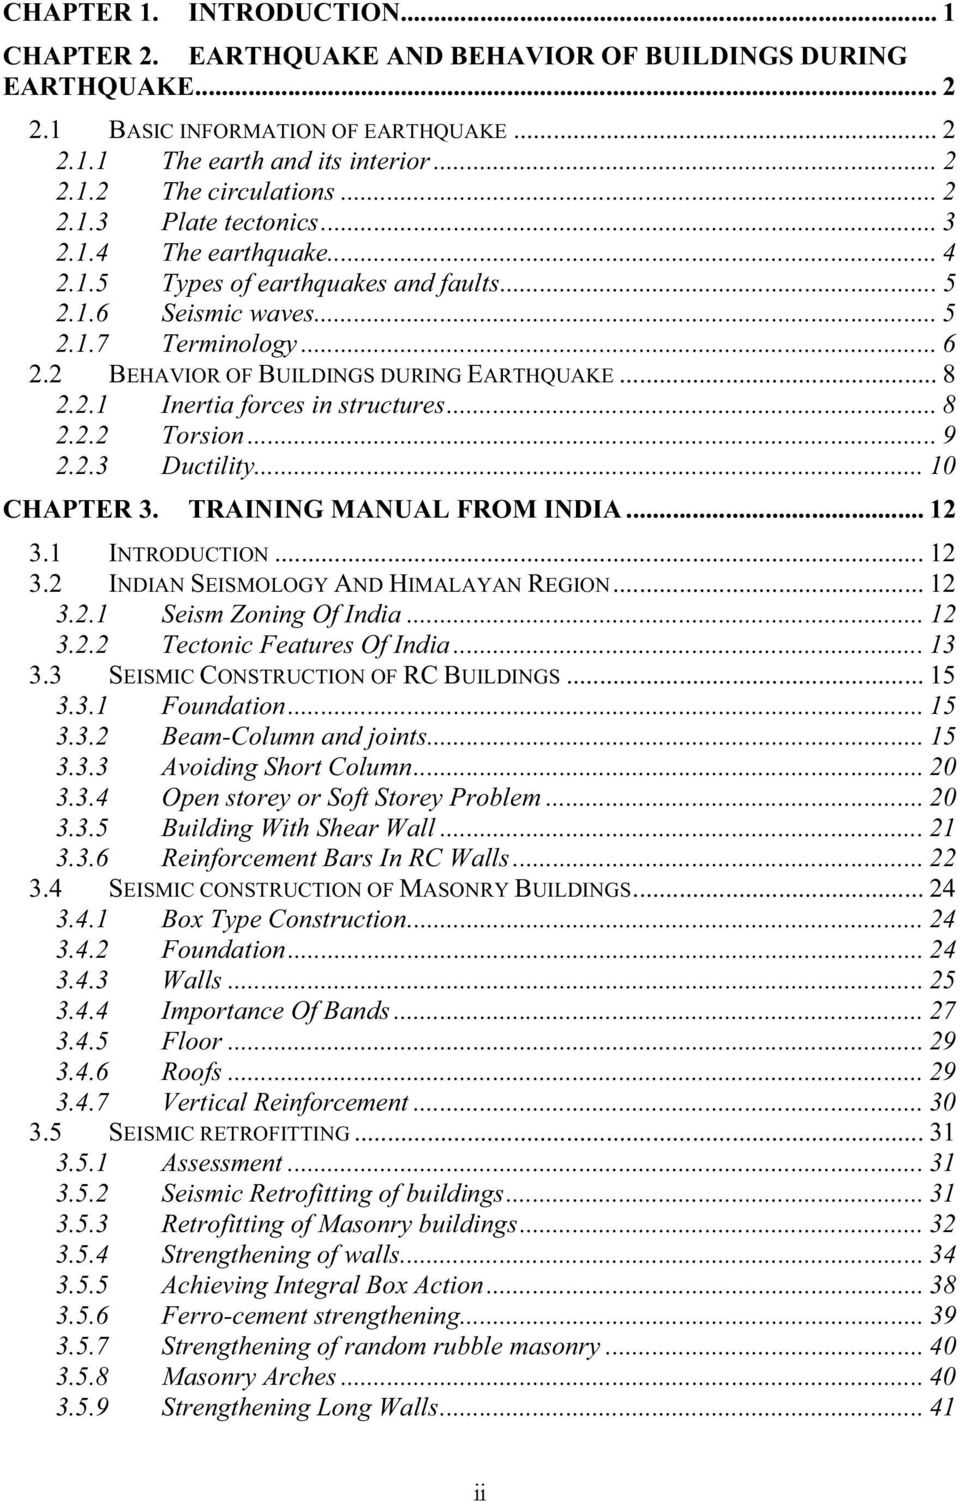 2.1 Inertia forces in structures... 8 2.2.2 Torsion... 9 2.2.3 Ductility... 10 CHAPTER 3. TRAINING MANUAL FROM INDIA... 12 3.1 INTRODUCTION... 12 3.2 INDIAN SEISMOLOGY AND HIMALAYAN REGION... 12 3.2.1 Seism Zoning Of India.